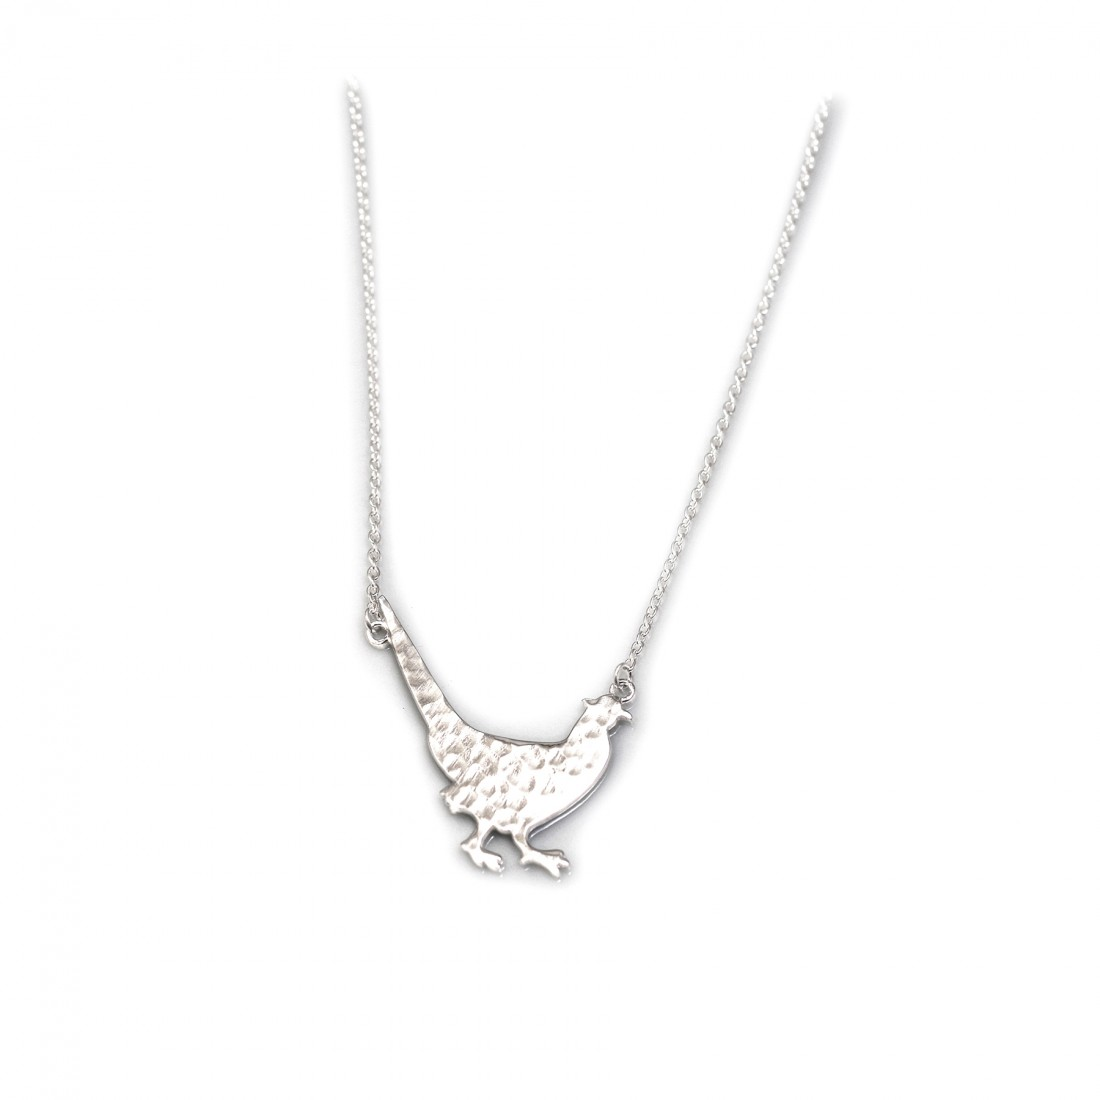 Exclusive Hammered Sterling Silver Pheasant Necklace